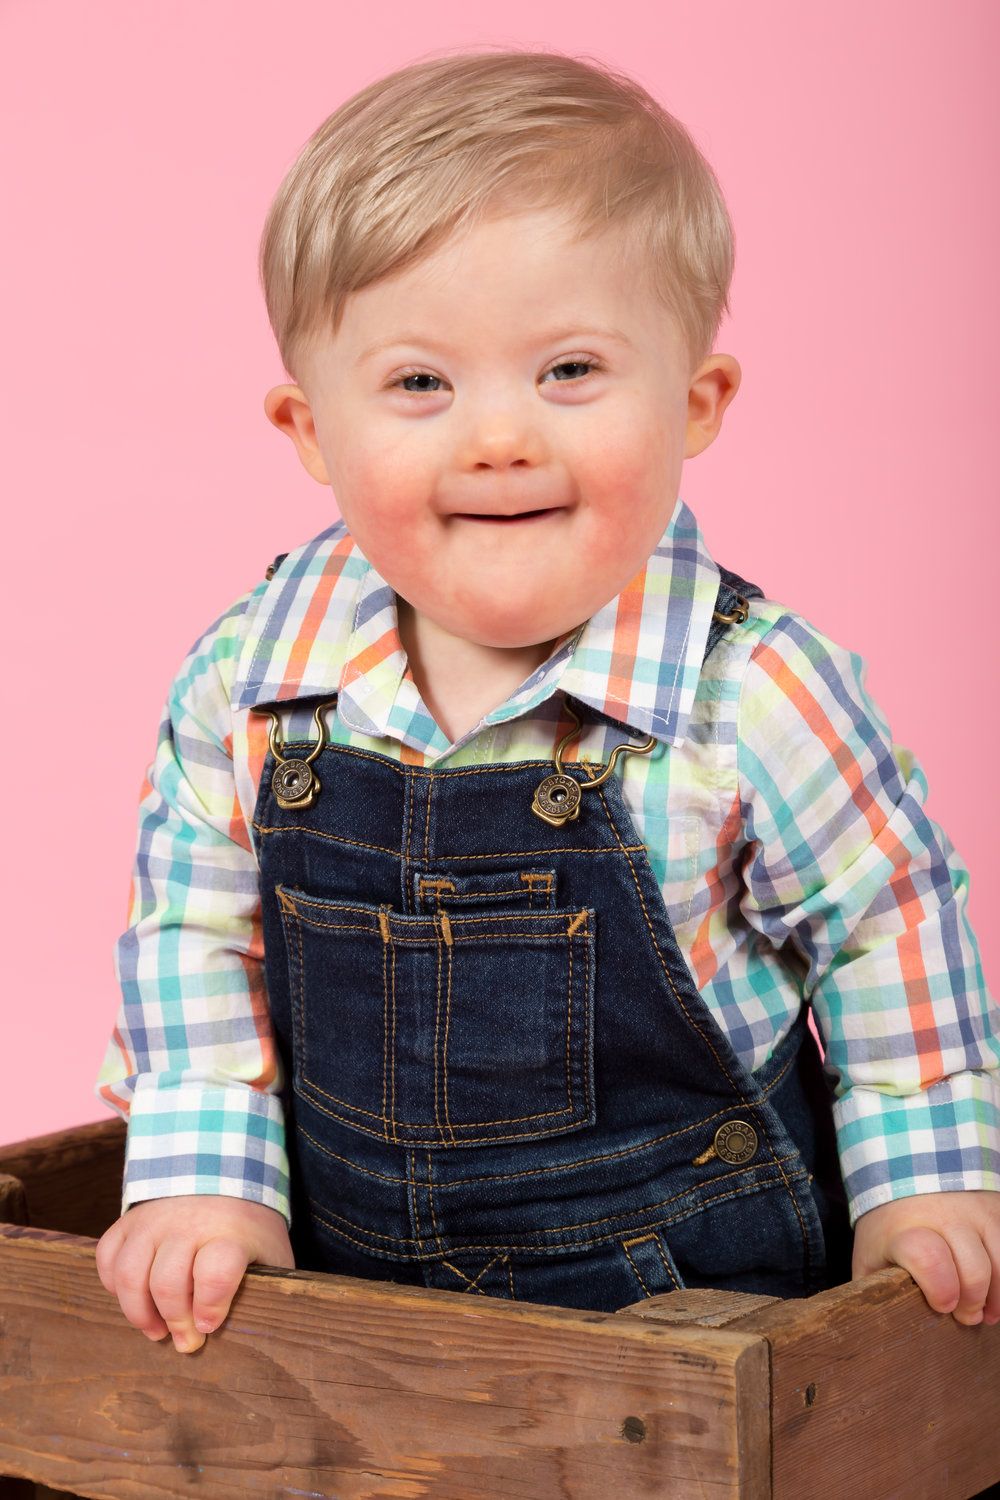 portland-or-vancouver-wa-baby-toddler-portfolio-portrait-photos